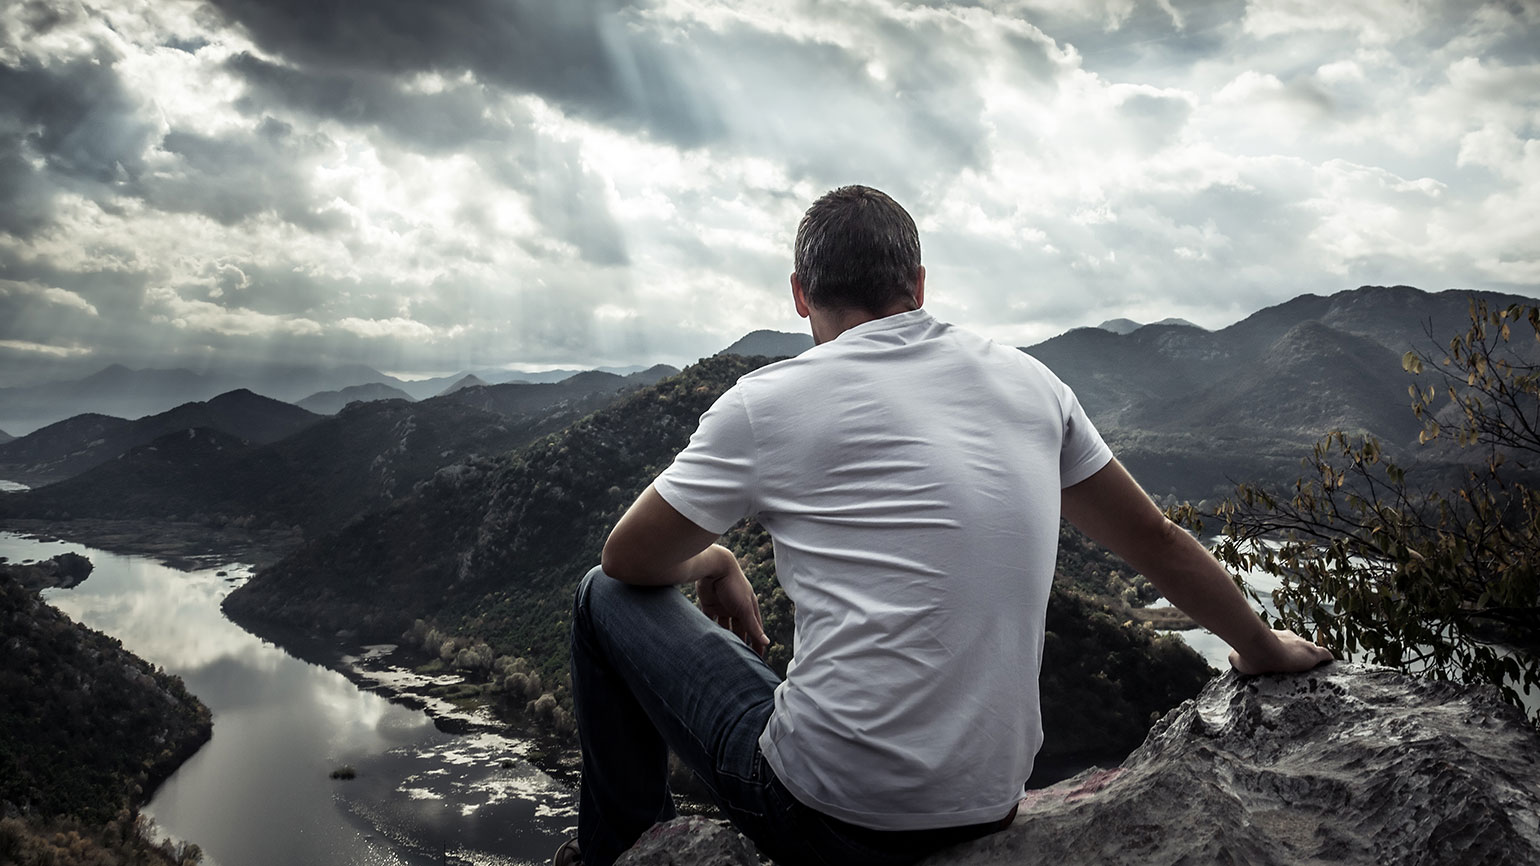 Man sitting peacefully on a mountain